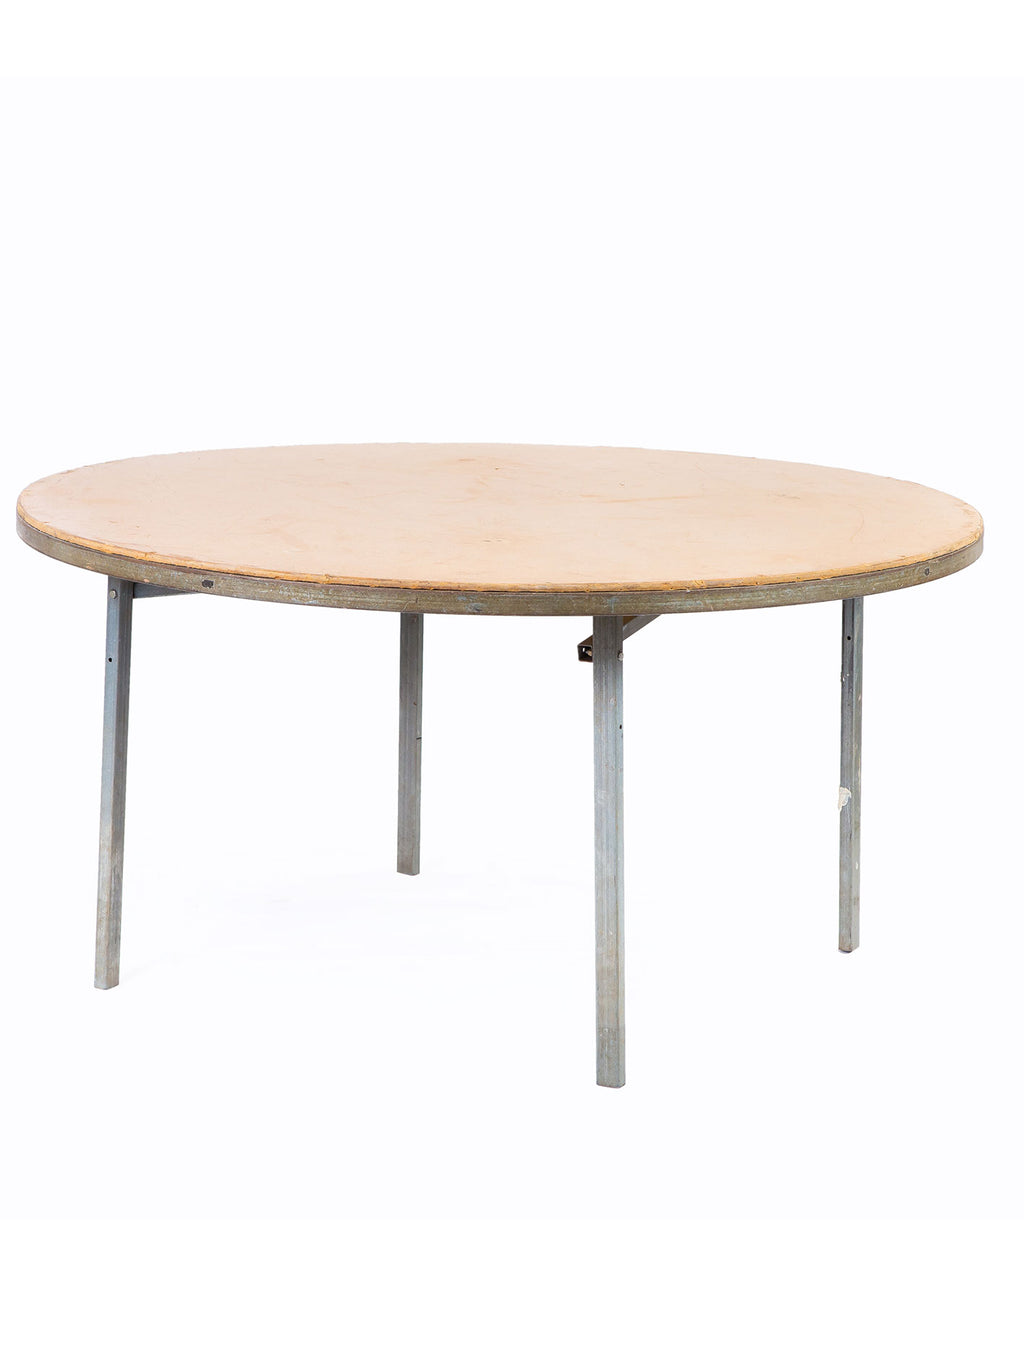 Table - Round 6ft